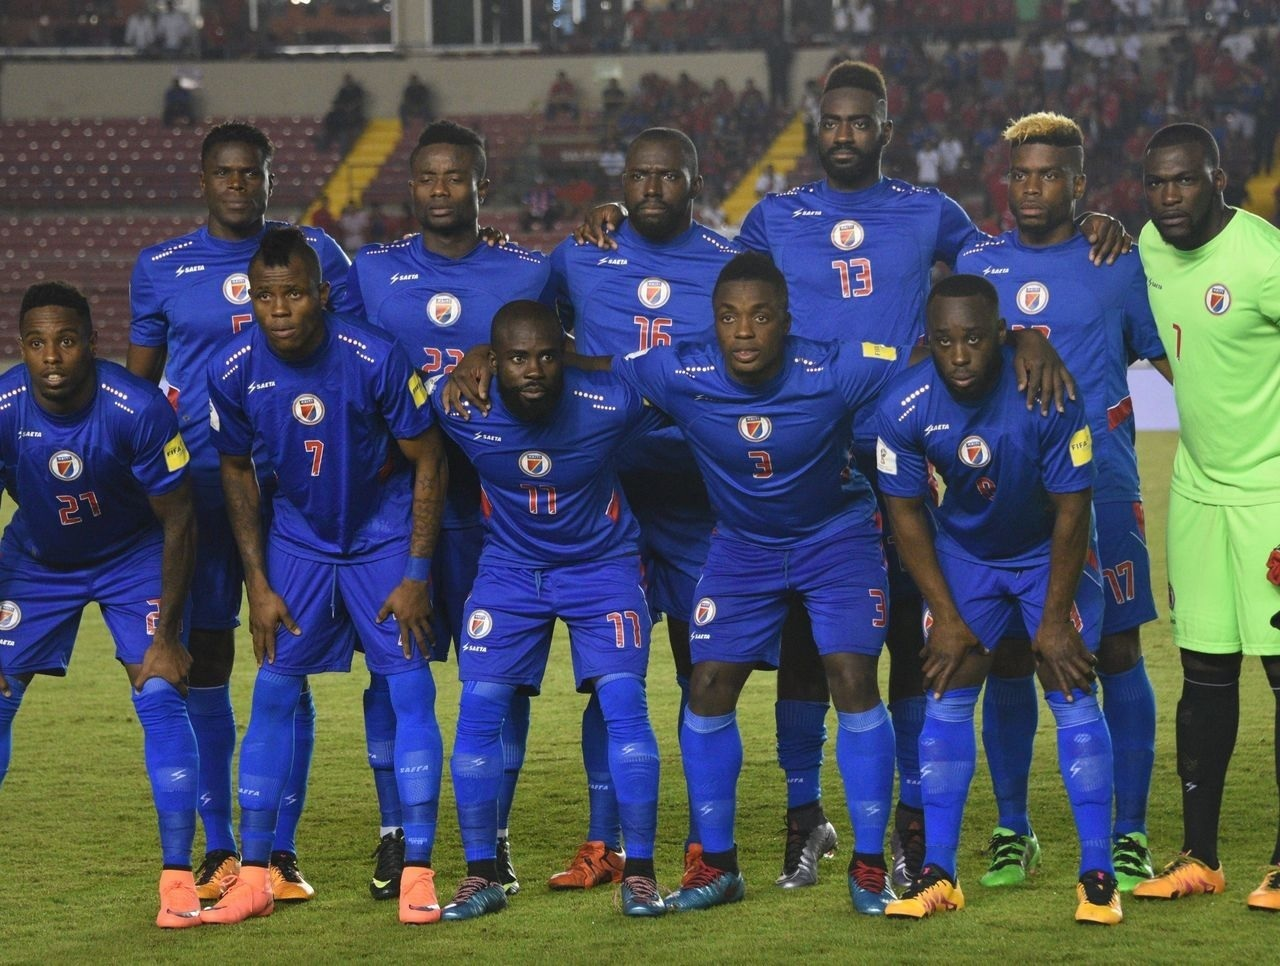 Haiti-2013-14-SAETA-home-kit-blue-blue-blue-line-up.jpg